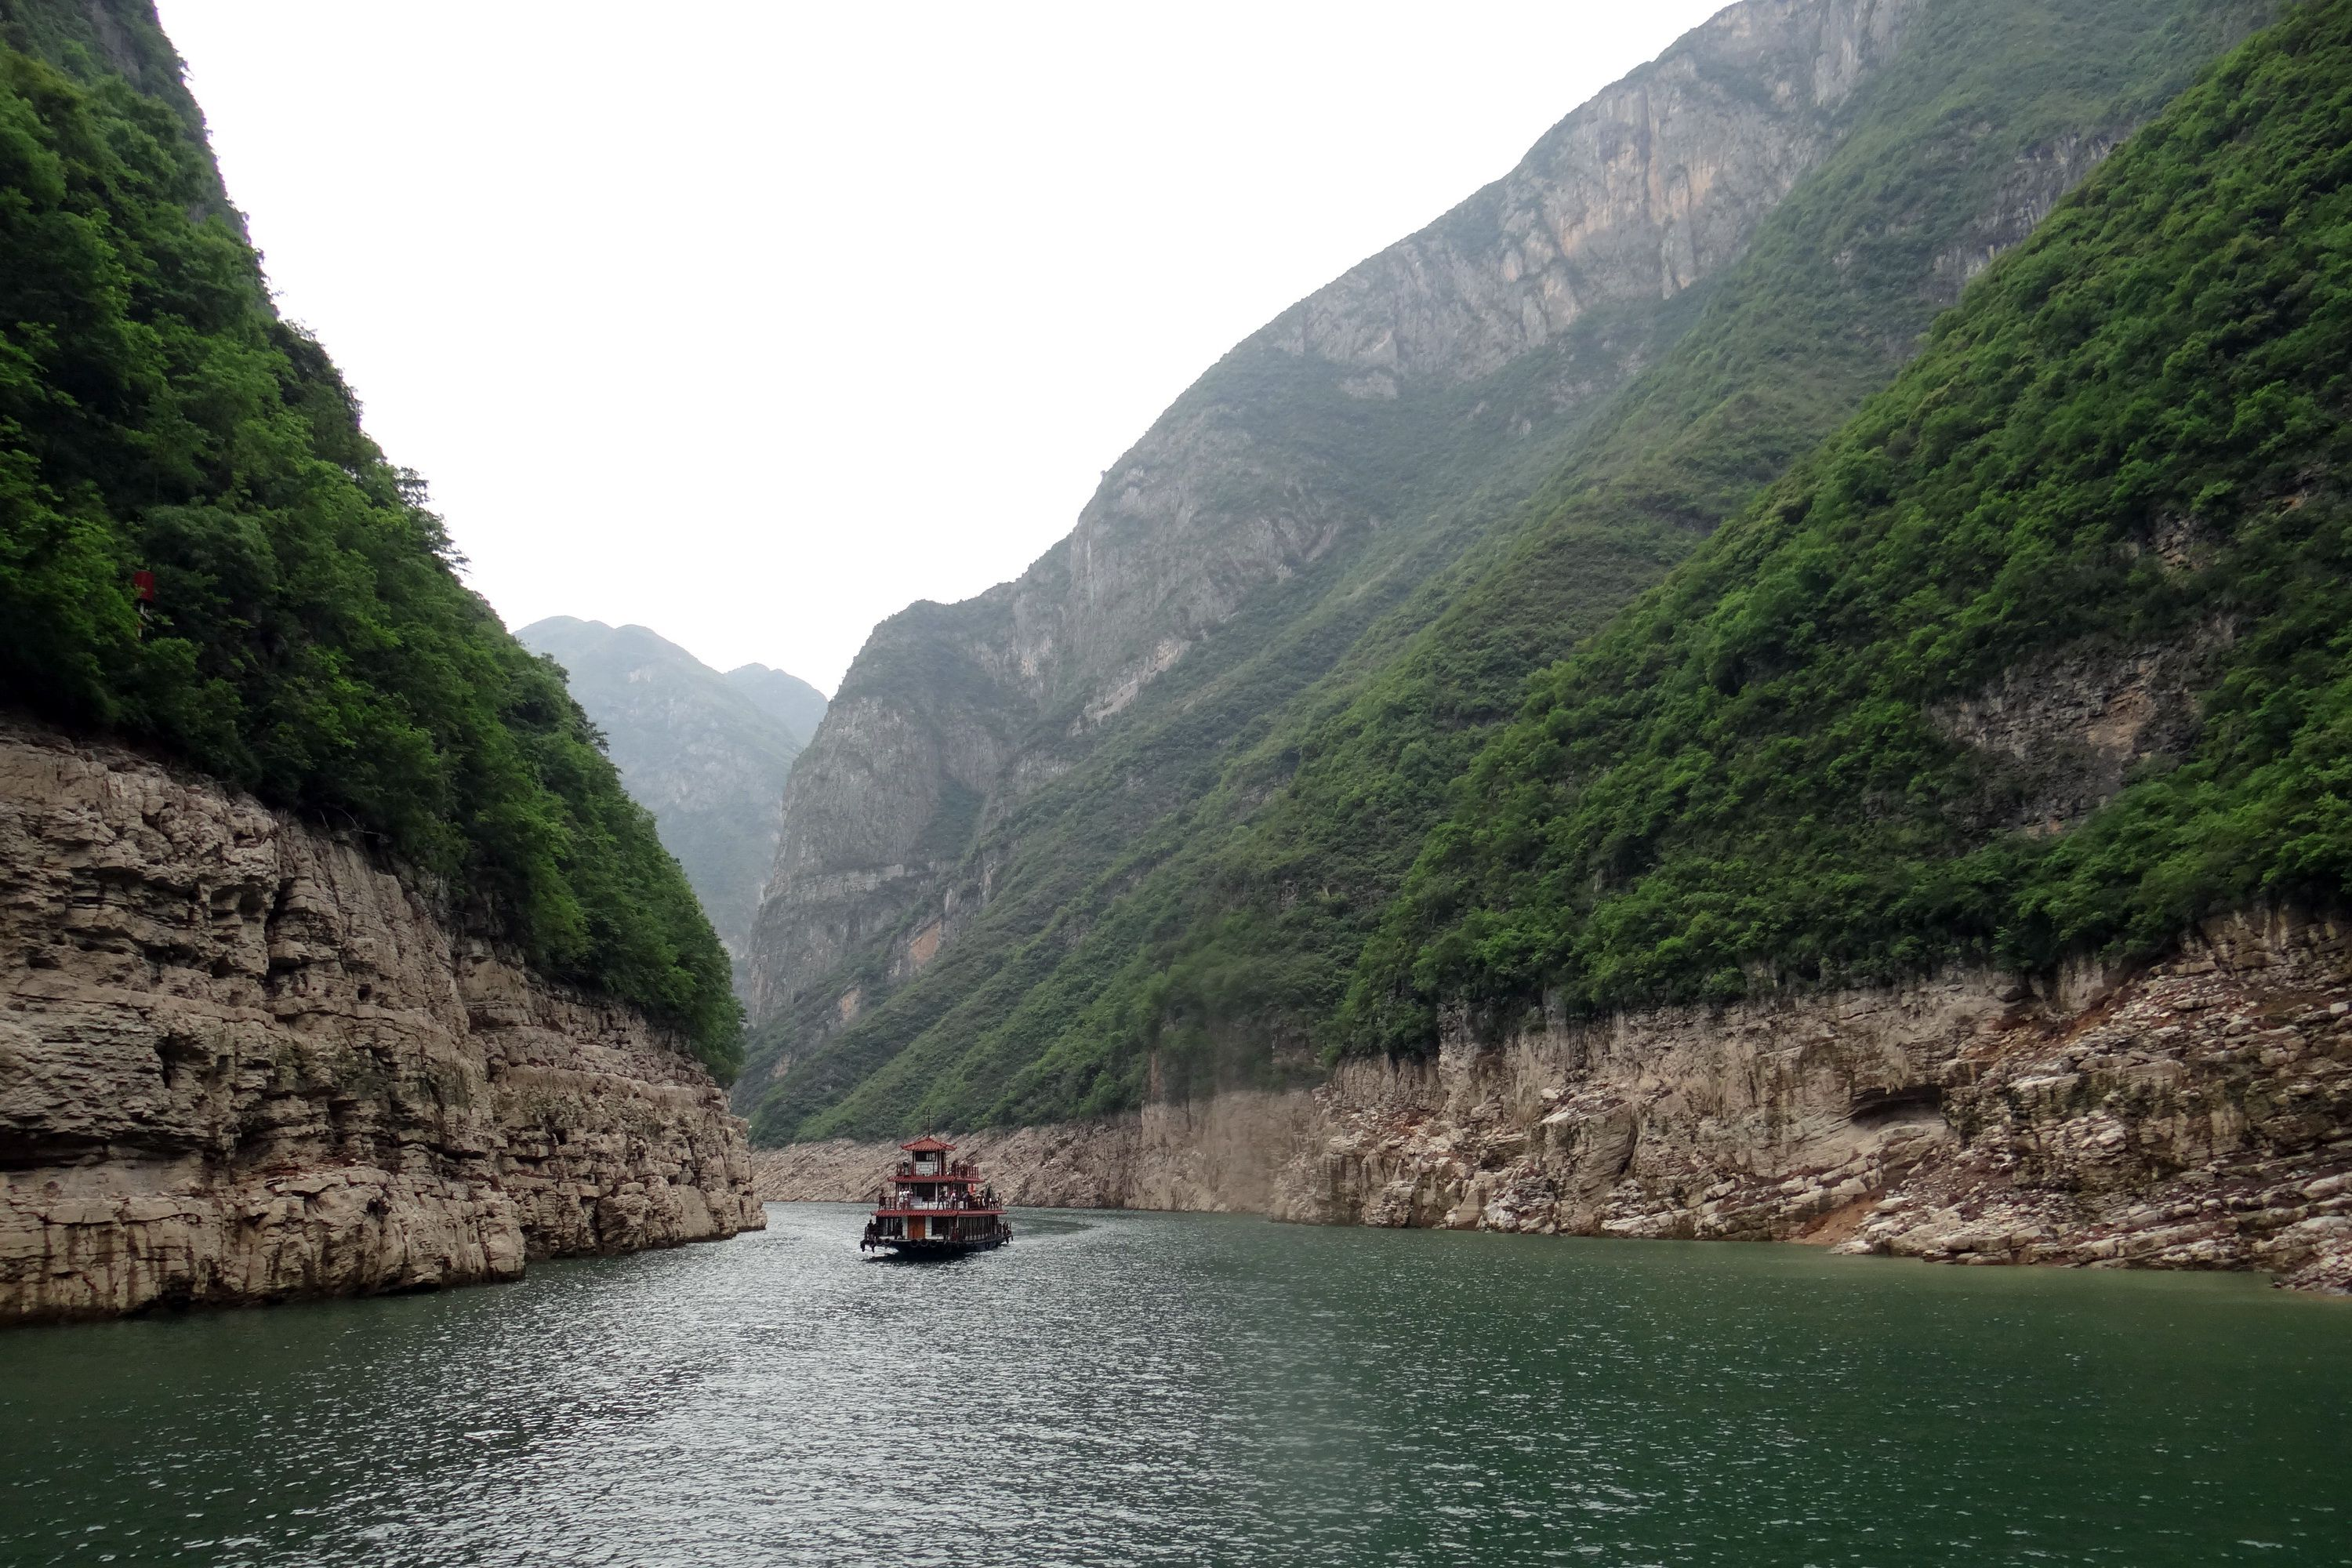 Lesser Three Gorges of the Yangtze River